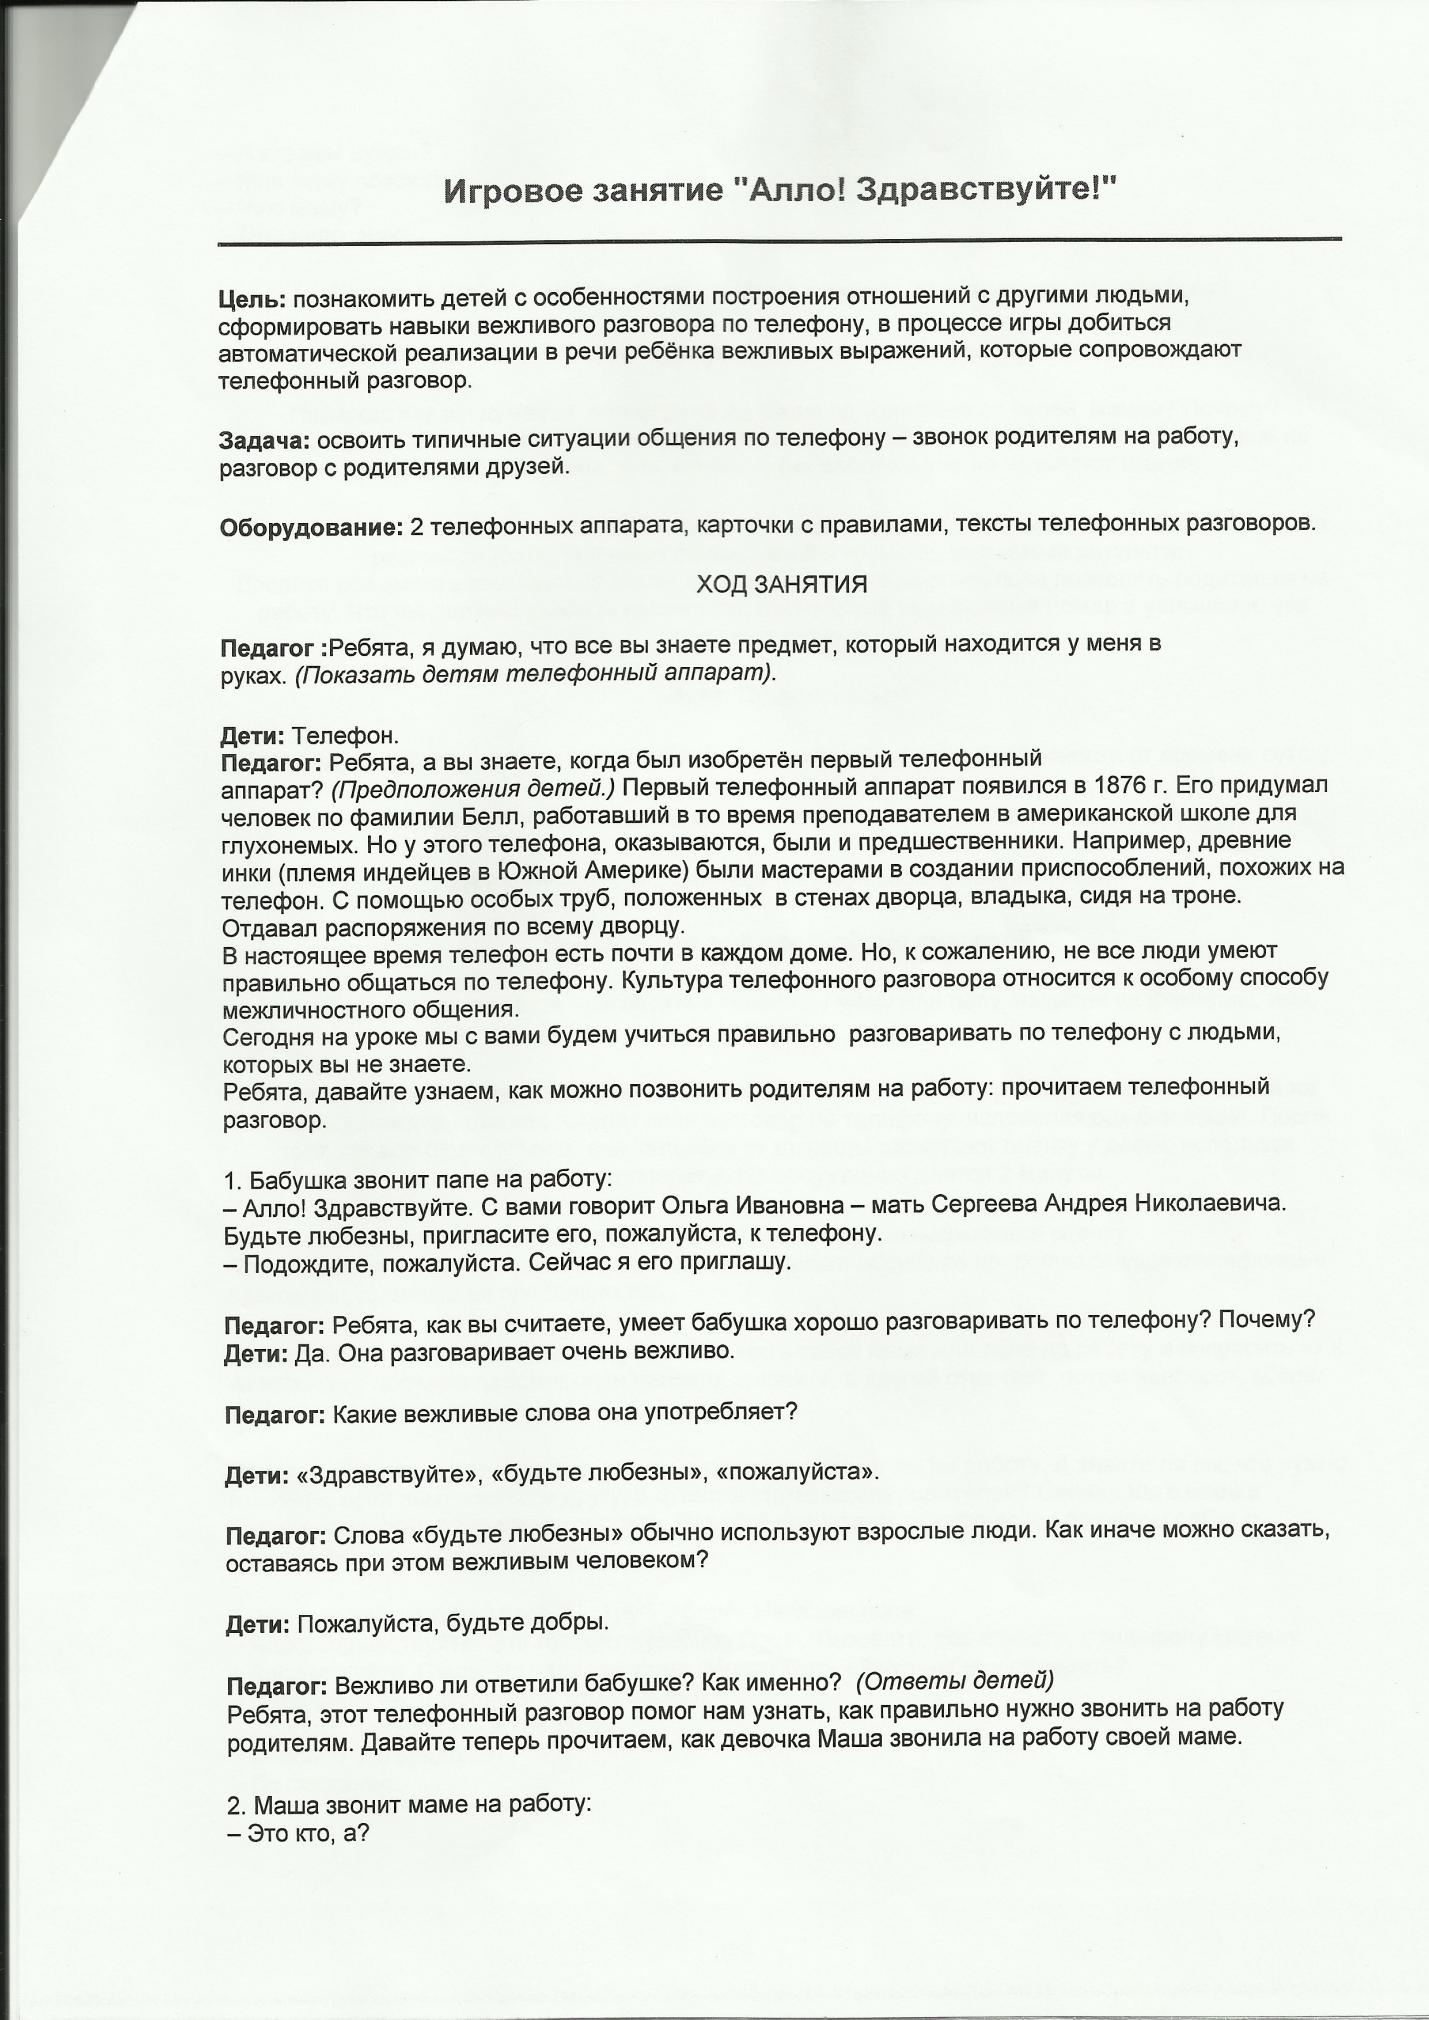 C:\Documents and Settings\User\Рабочий стол\мама\скан\Scan2.tif